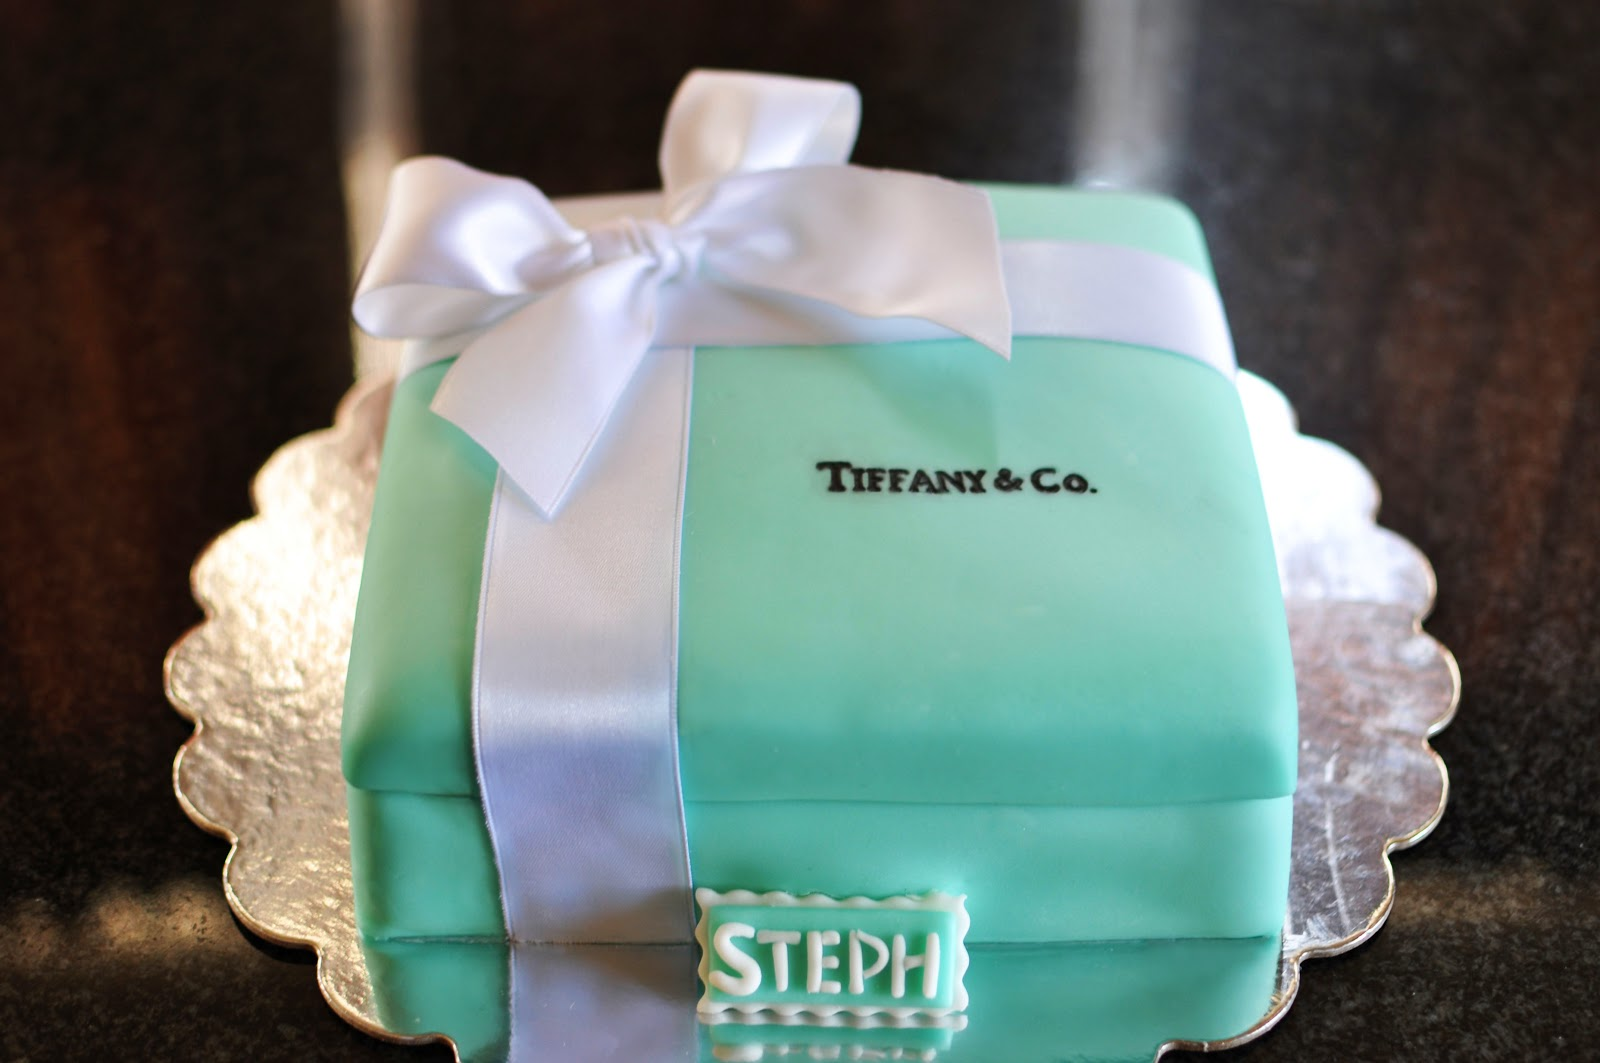 Tiffany gift box cake sweet kats creations to start i baked two 8 square cakes and cut the sides to make the corners sharper negle Choice Image